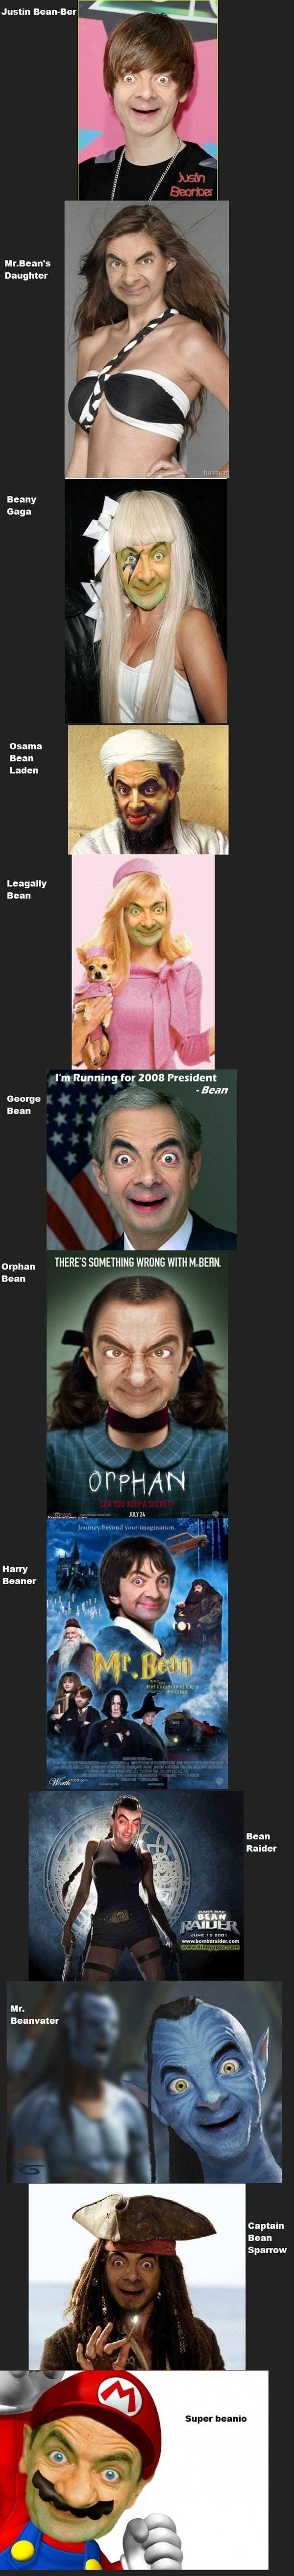 Mr Bean Win Comp